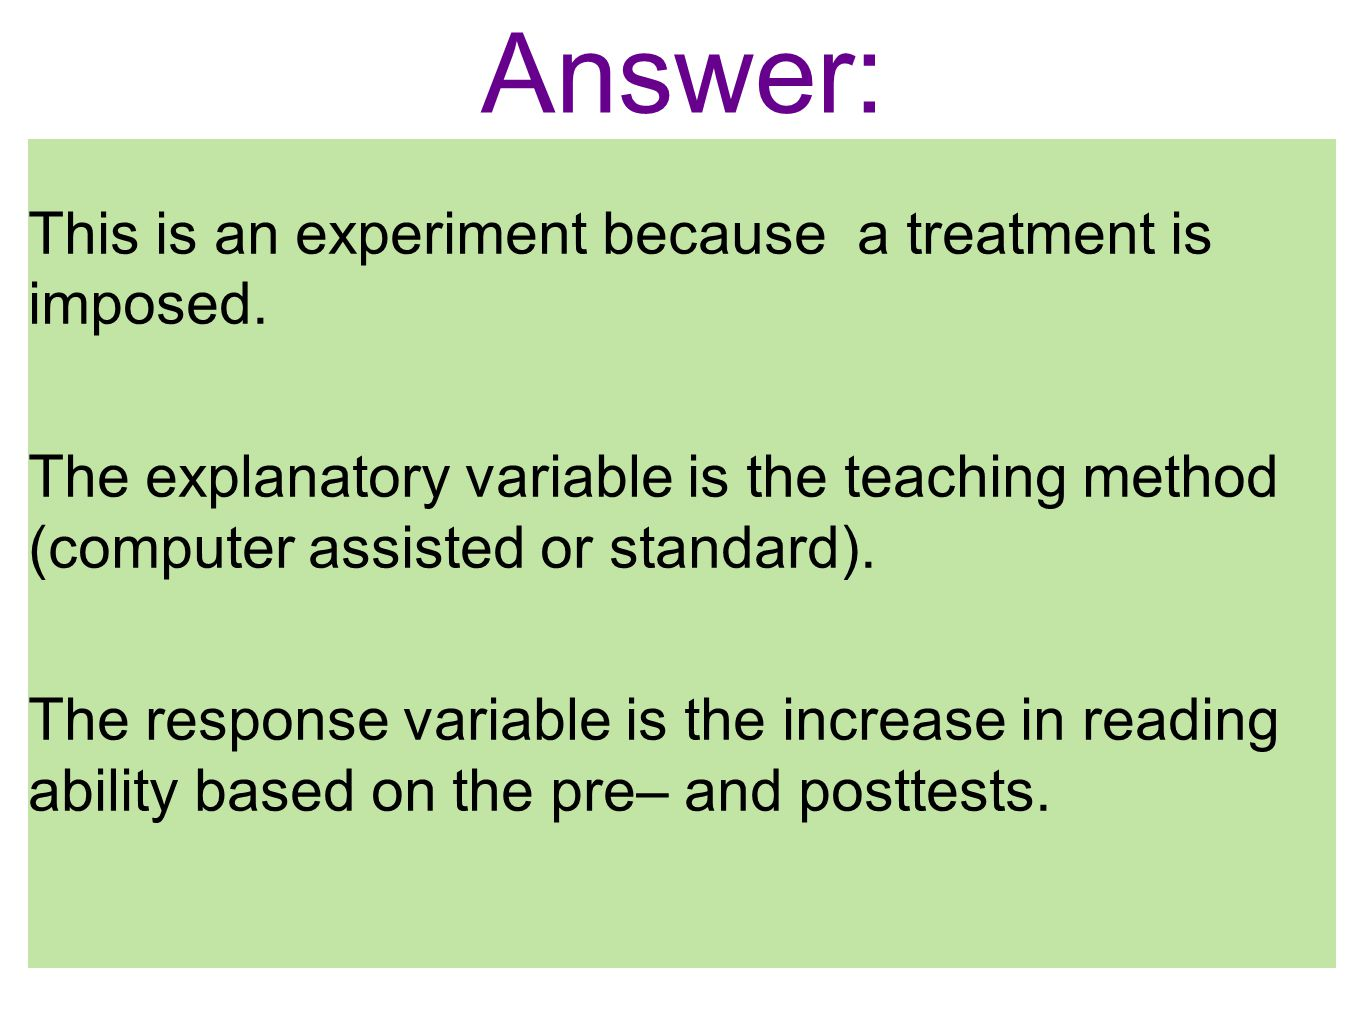 Answer: This is an experiment because a treatment is imposed.